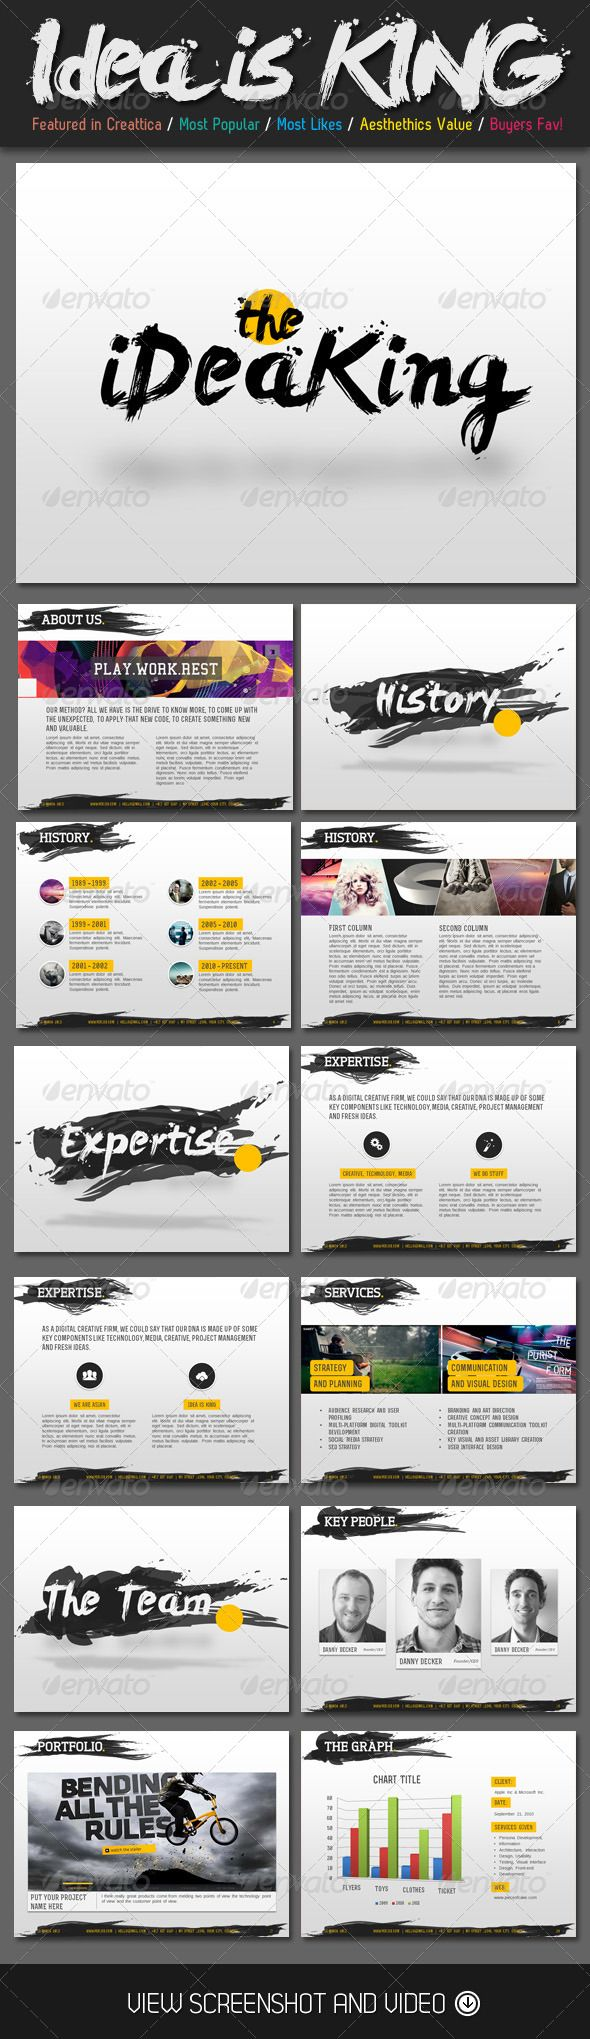 Best 131 PowerPoint Templates ideas on Pinterest | Productivity ...